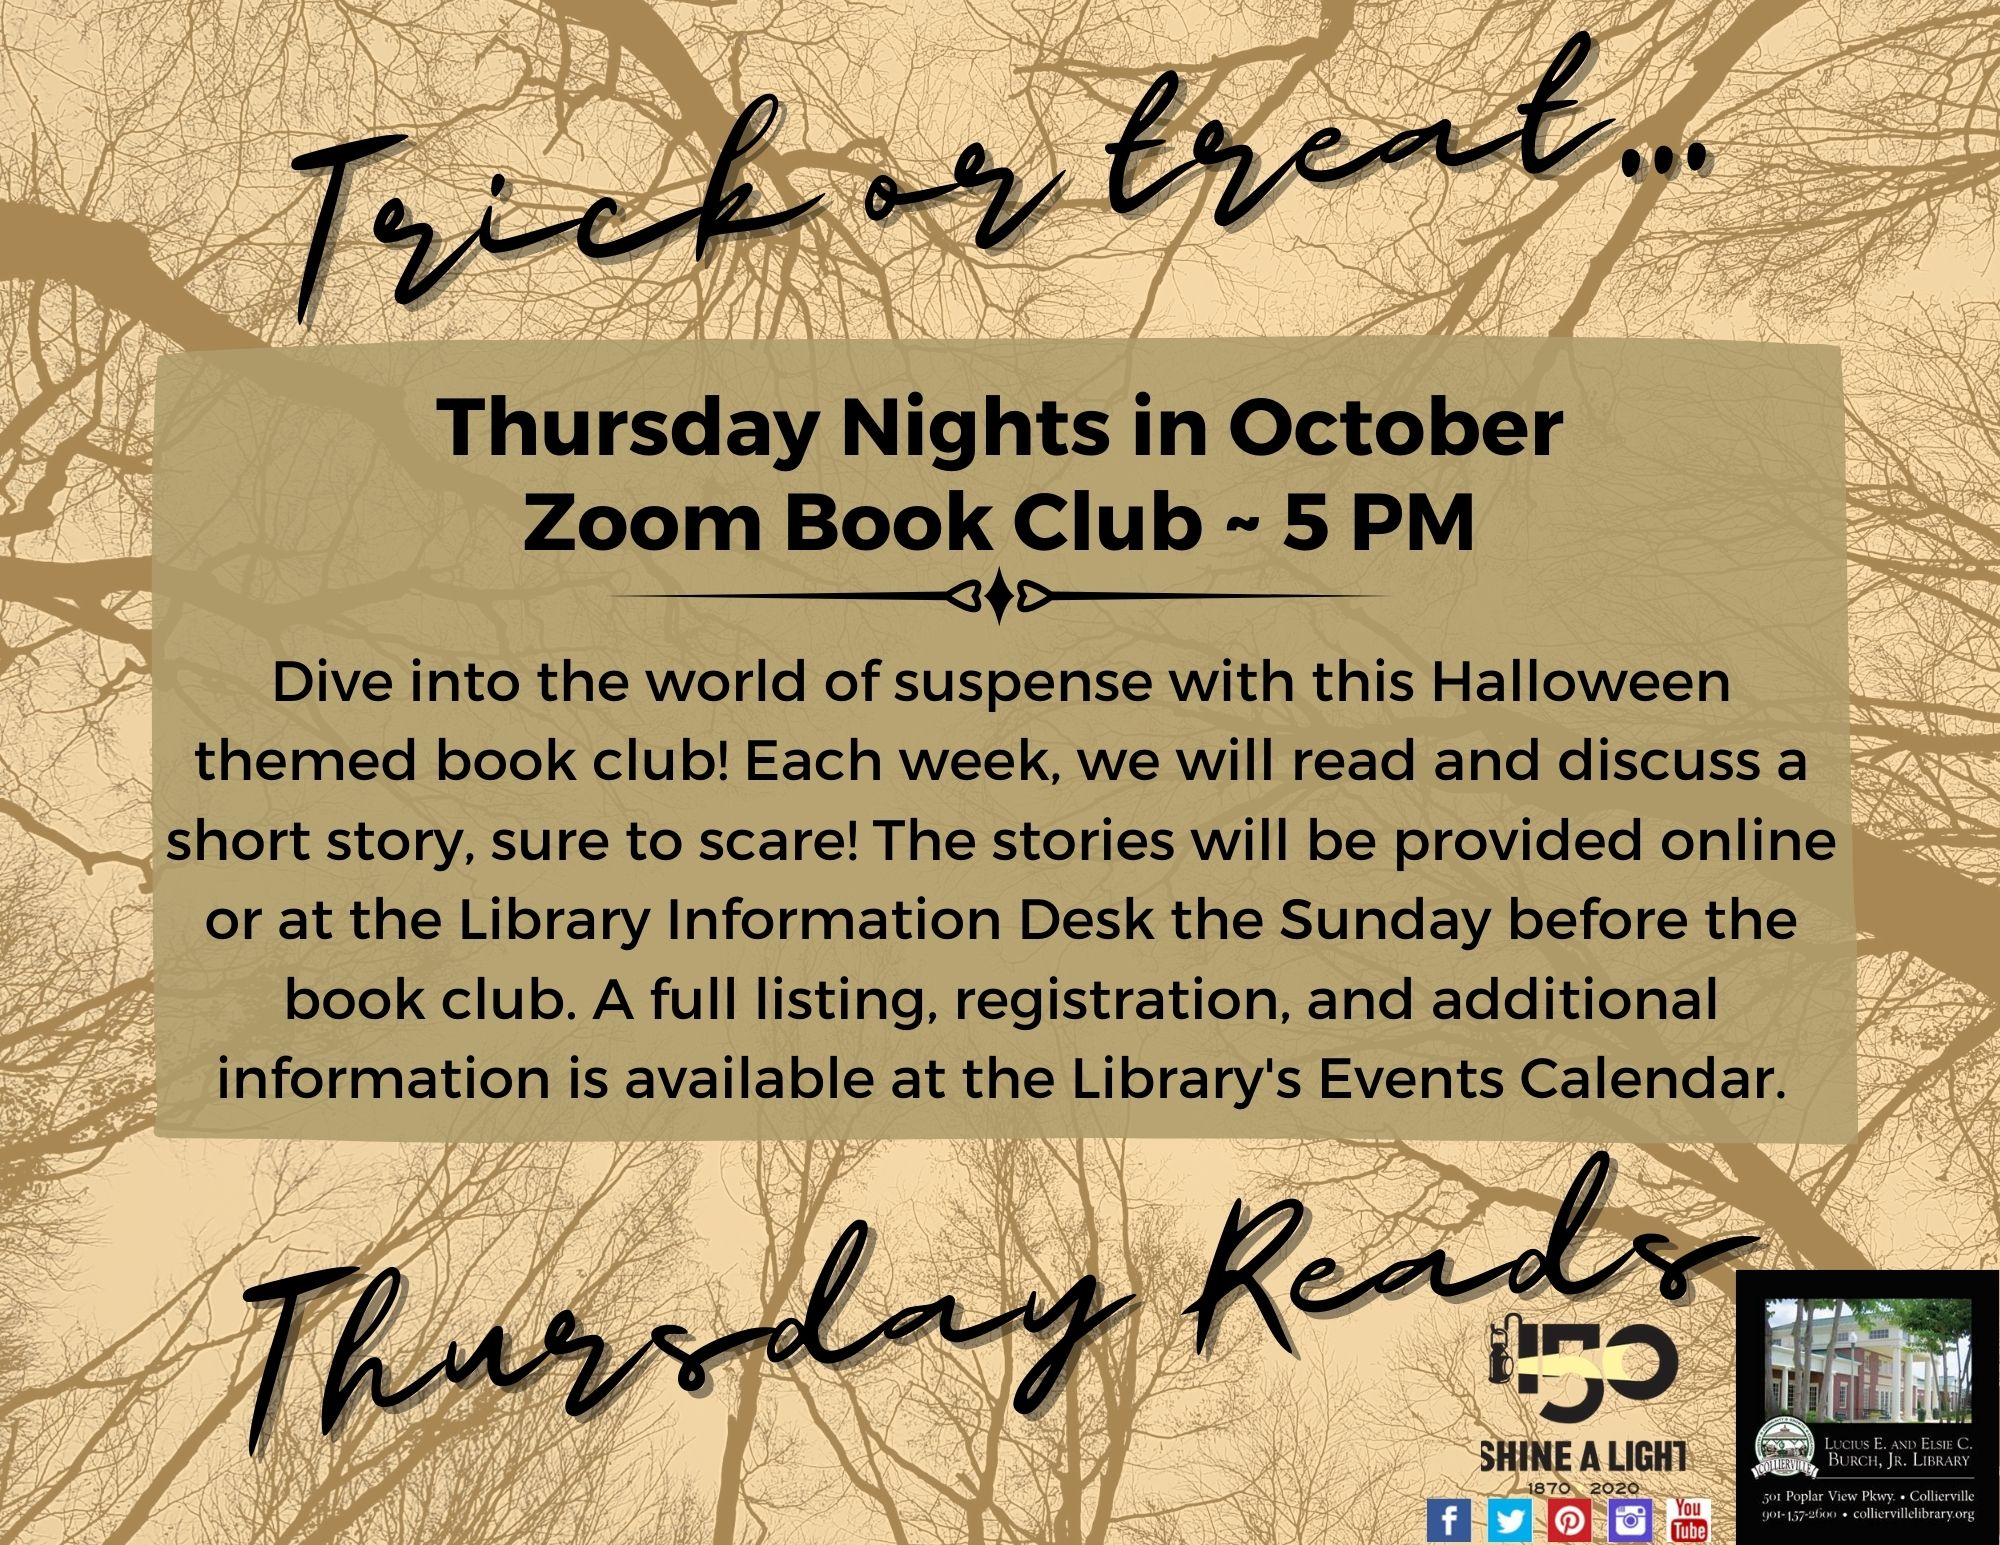 Trick or Treat Thursday Reads